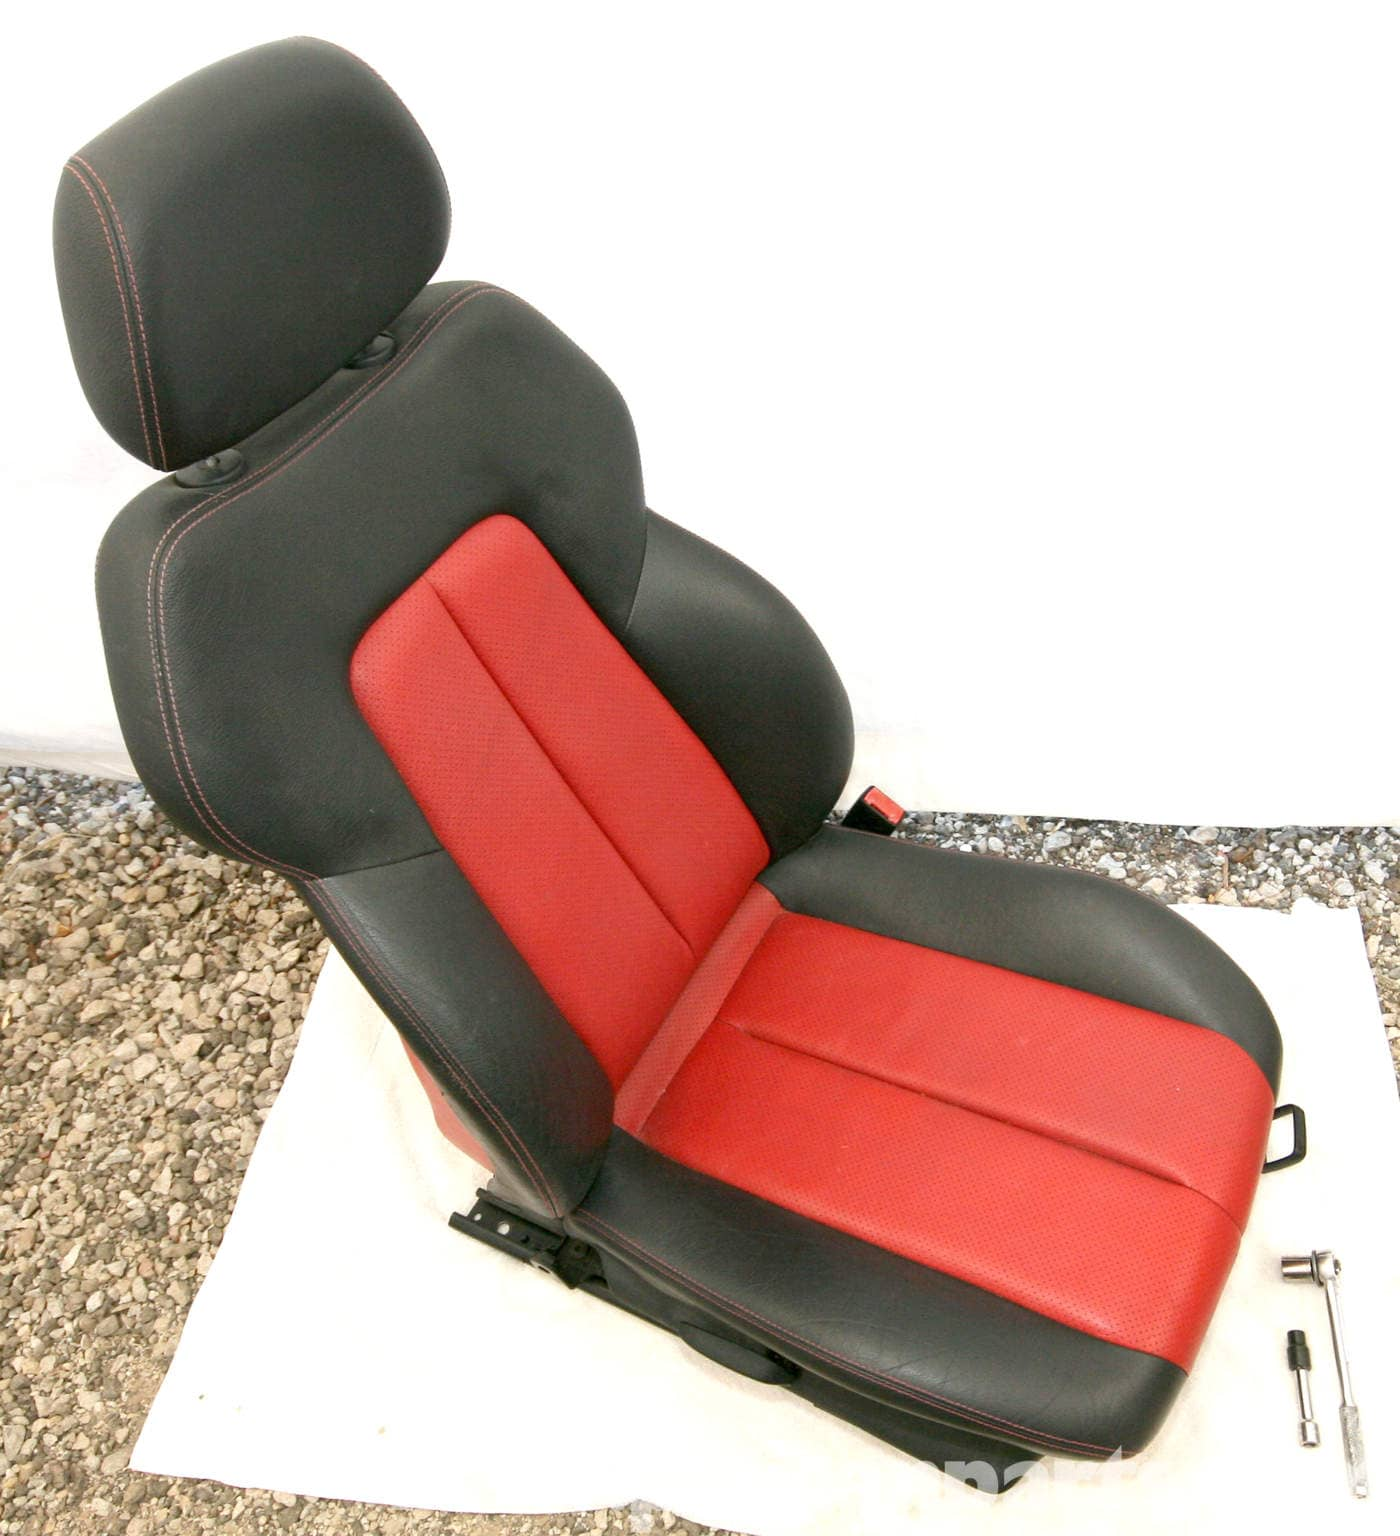 Mercedes benz slk 230 seat removal 1998 2004 pelican for Mercedes benz replacement seat covers